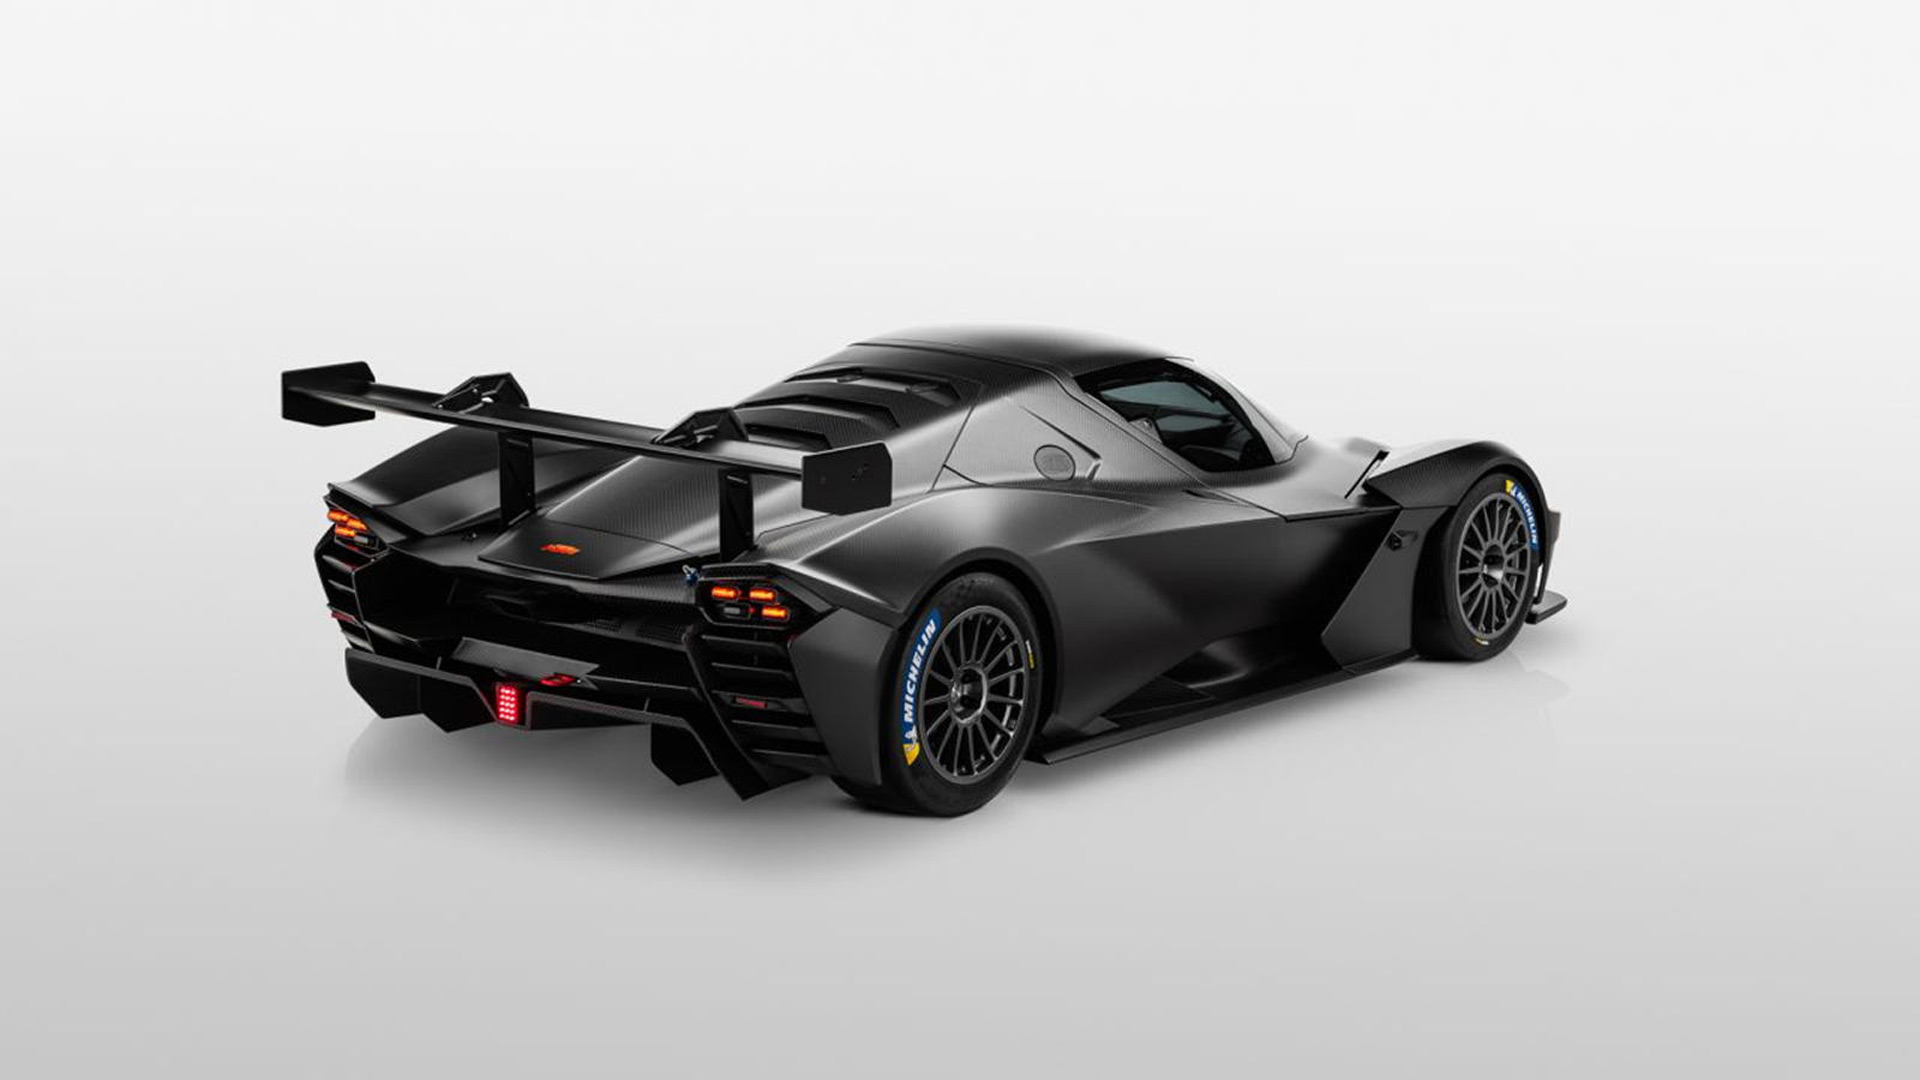 2021-ktm-x-bow-gtx-race-car_100765300_h